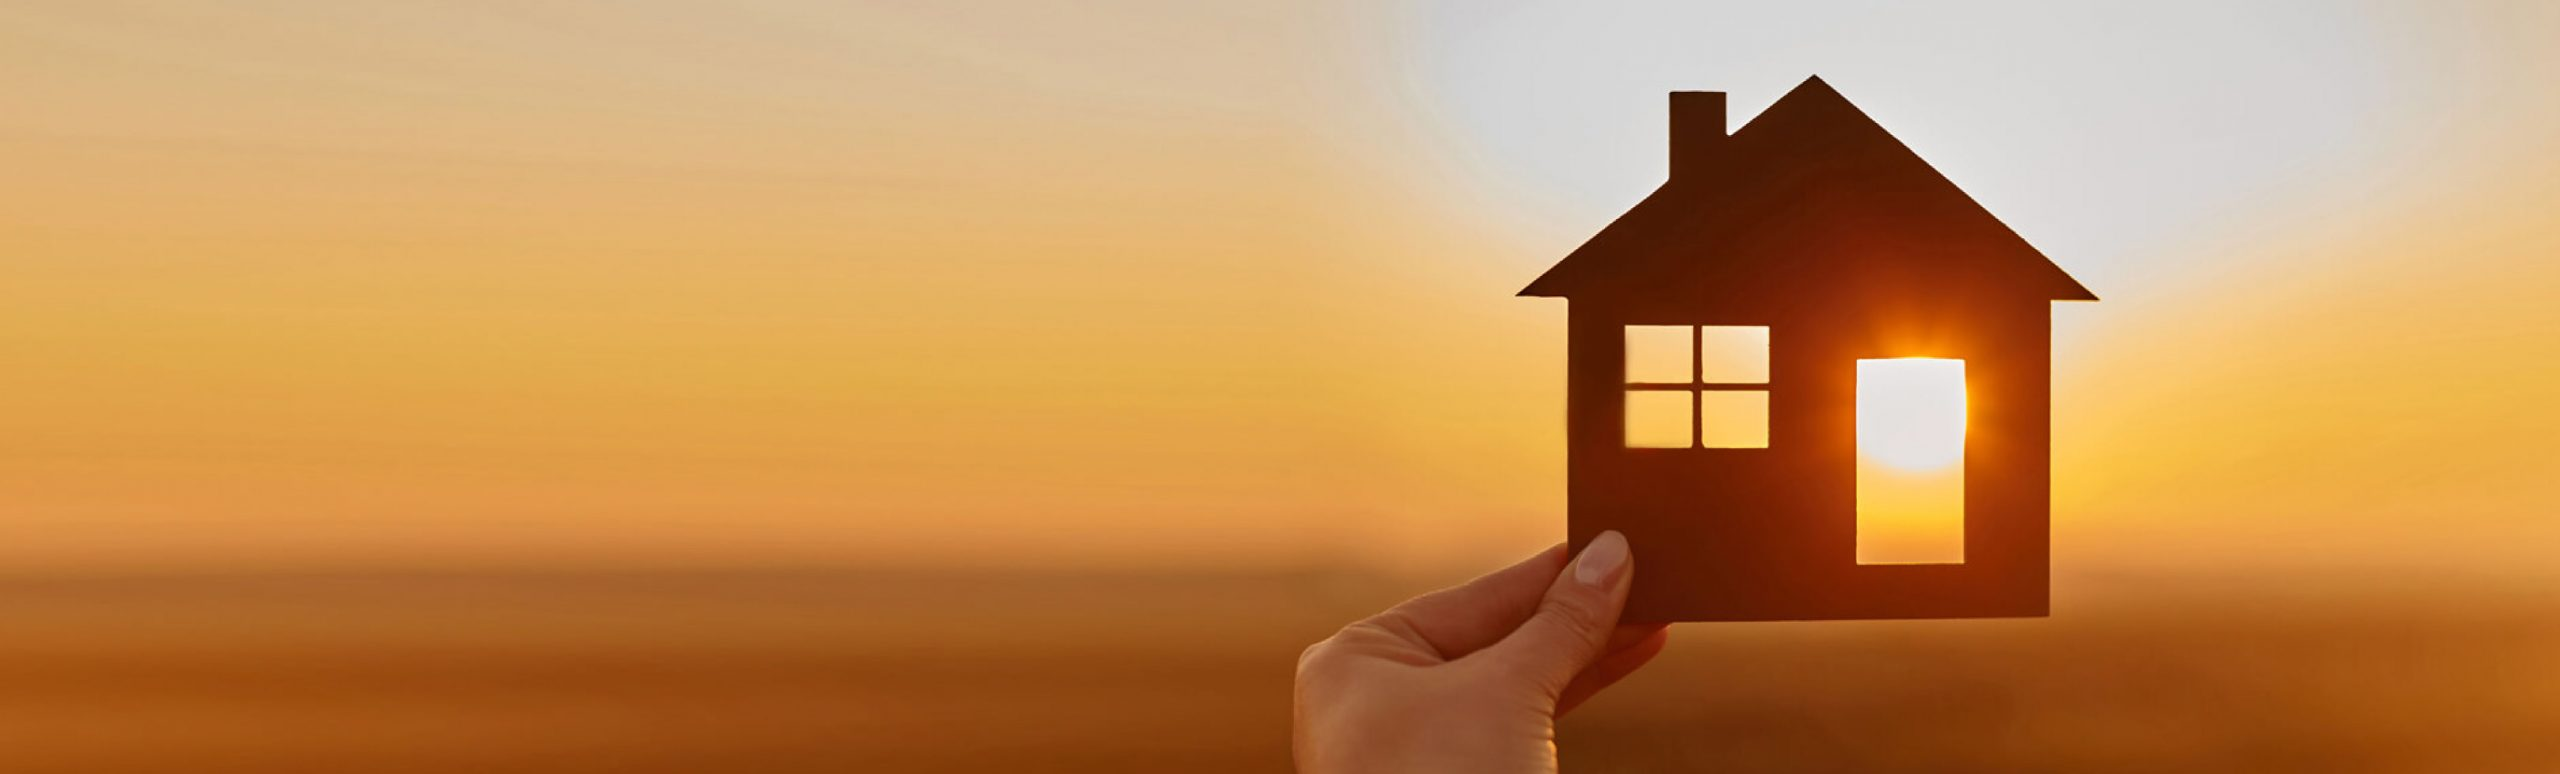 paper house in front of sunset